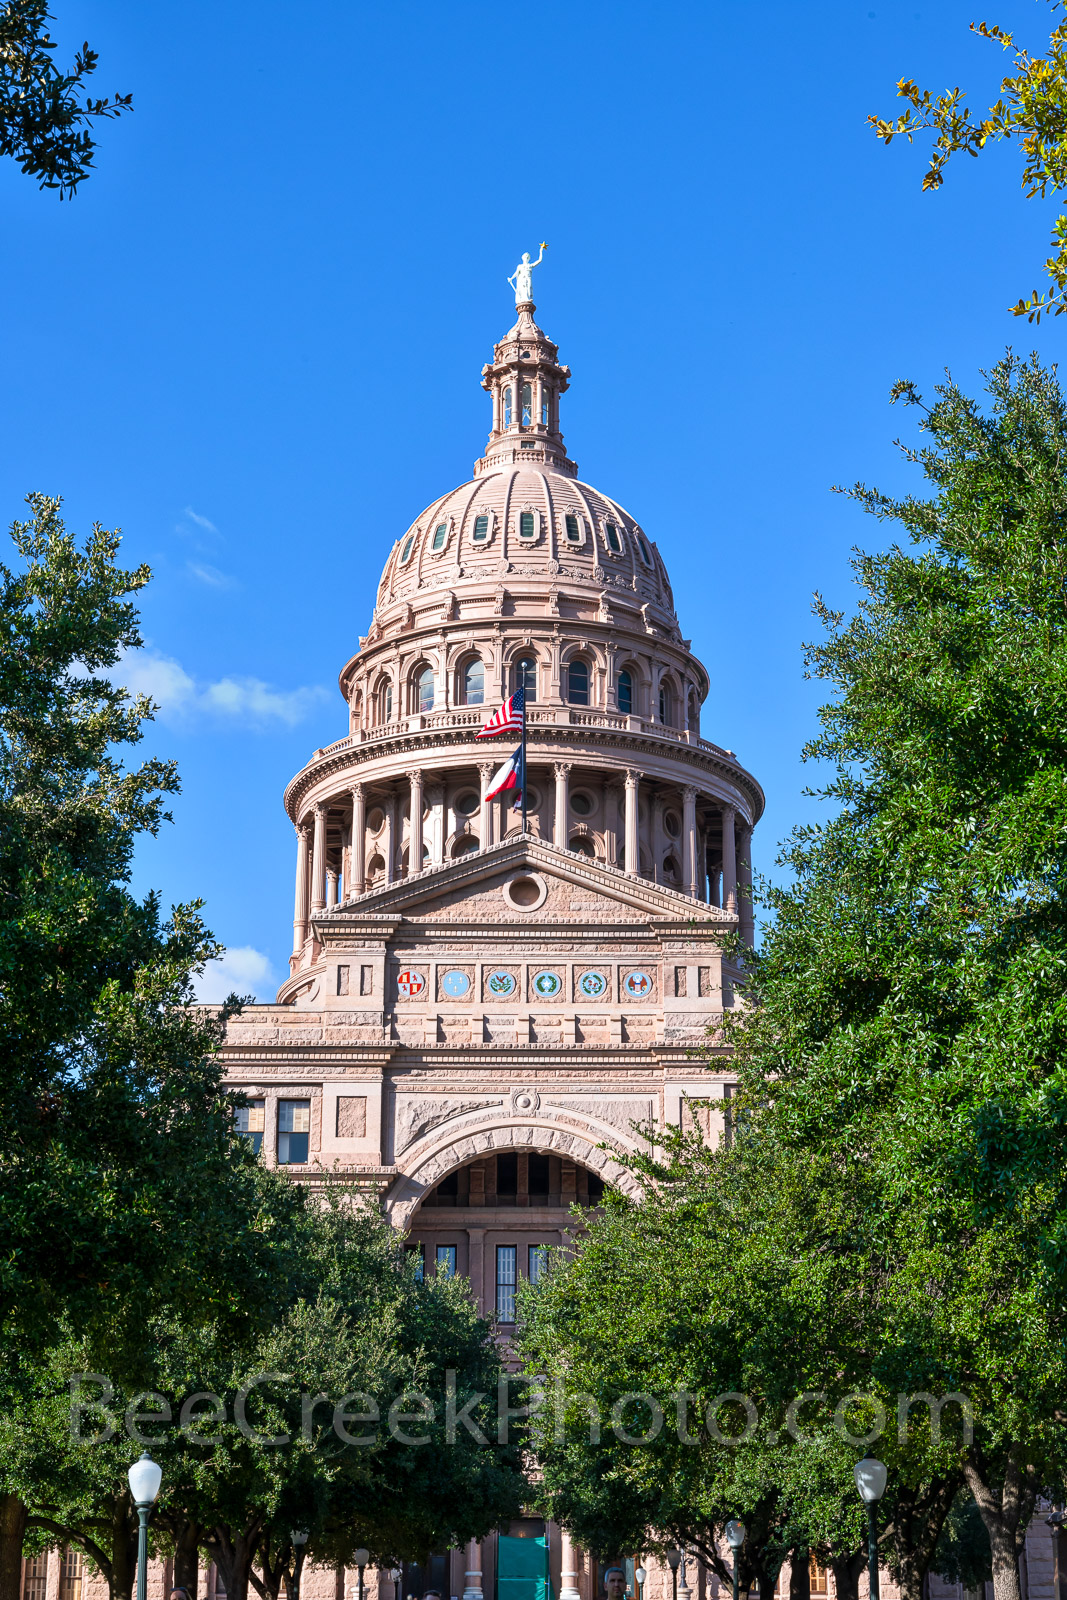 Capitol, Capital, Texas, vertical, building, Austin, south view, Congress ave., Capitol of Texas, Dome, red granite, renaissance rivival architecture, state capital, state capitol, images of texas,